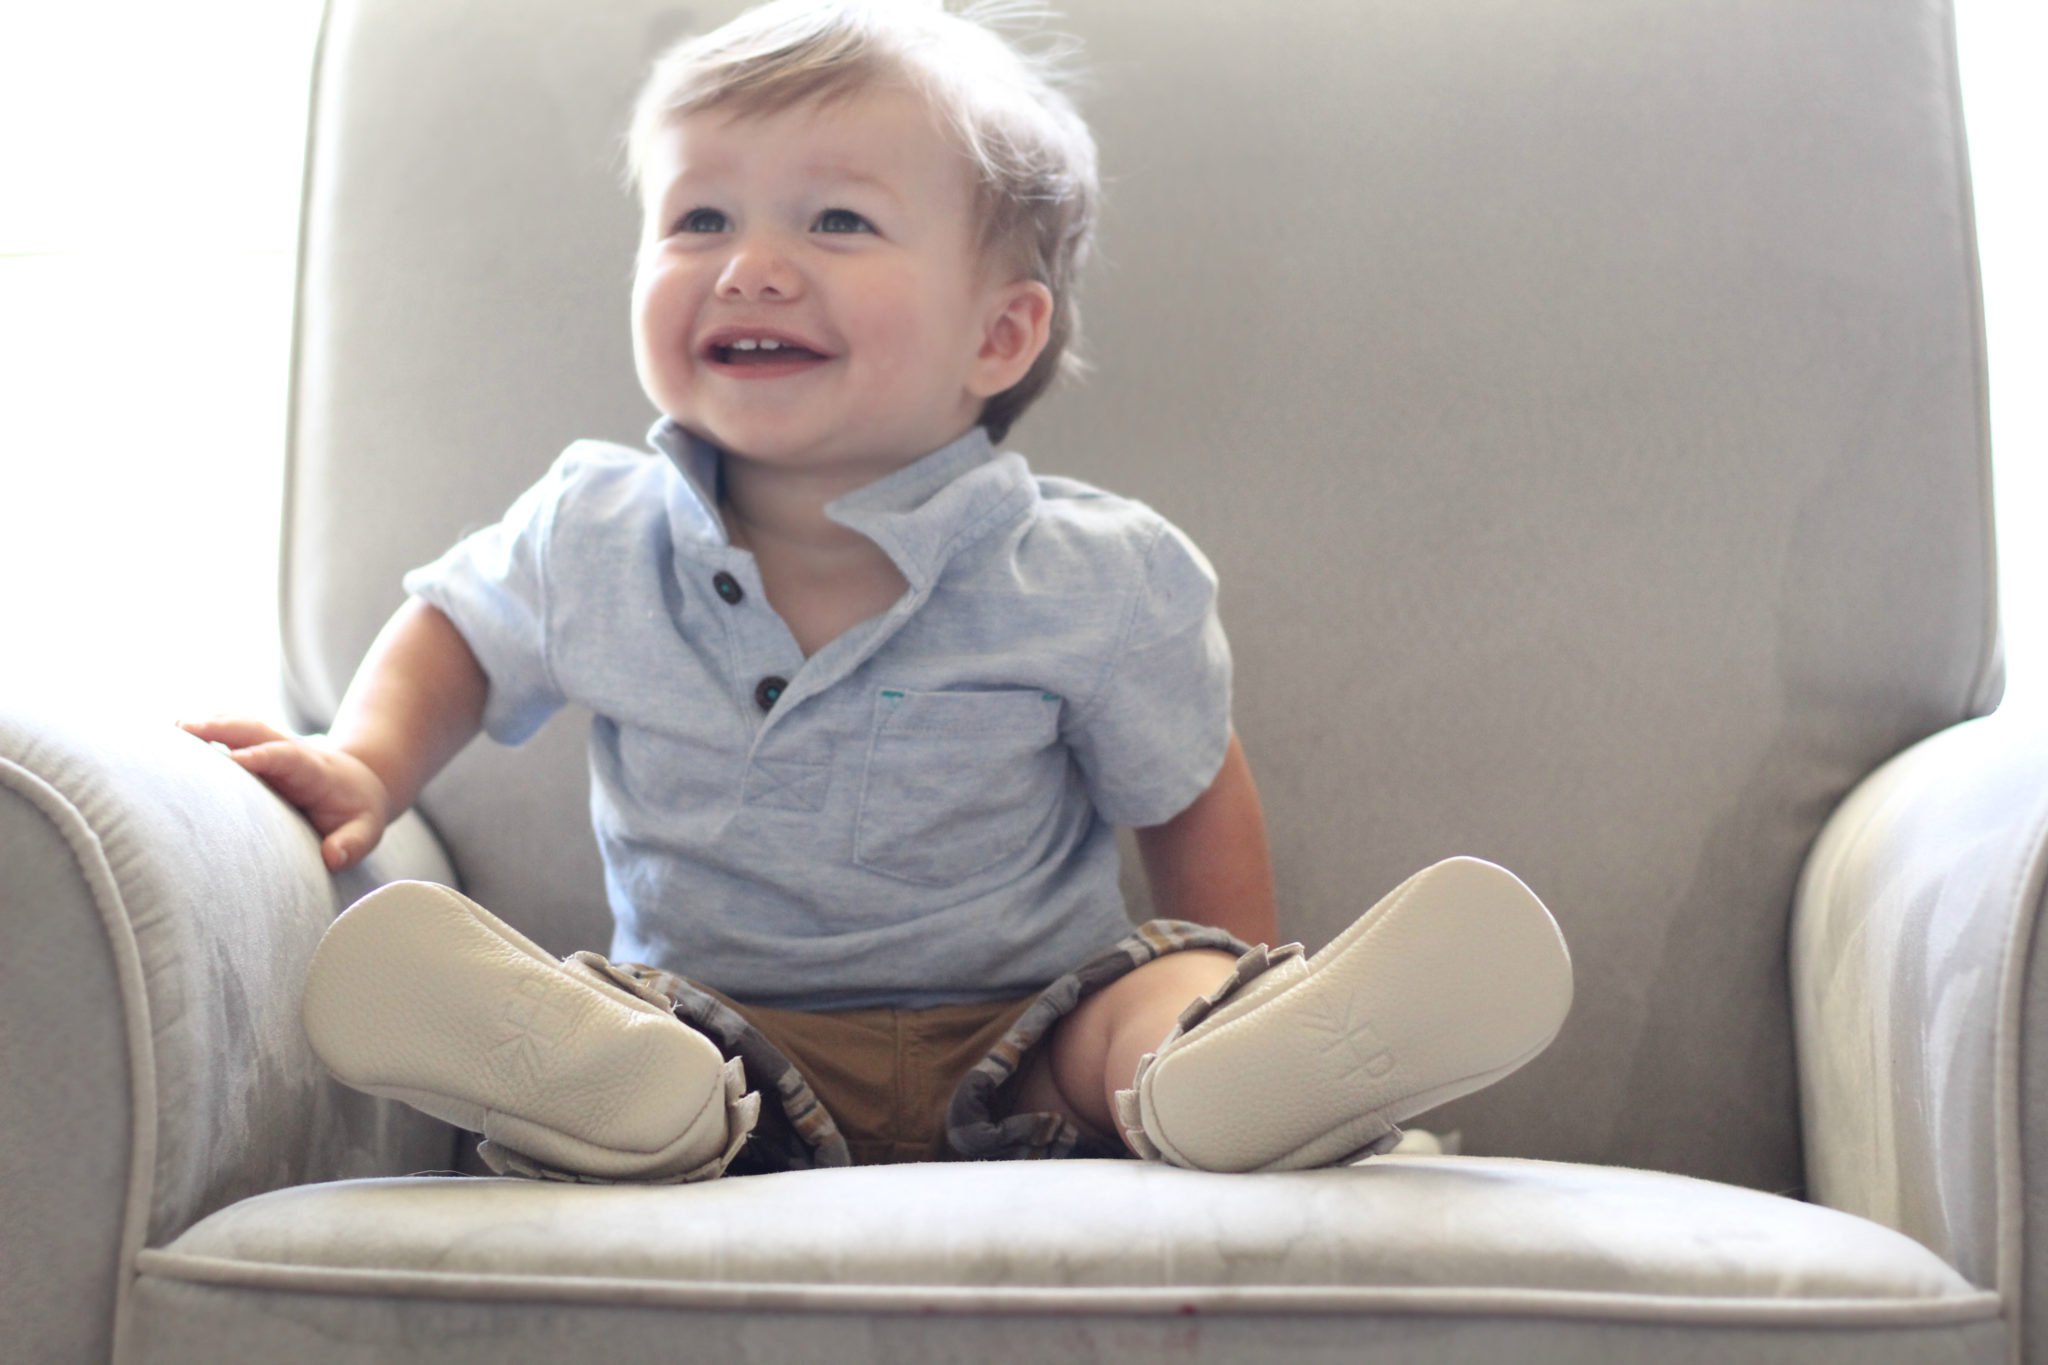 Freshly Picked Crib Moccasins for Toddlers, shoes for fat baby feet, baby shoes that won't fall off